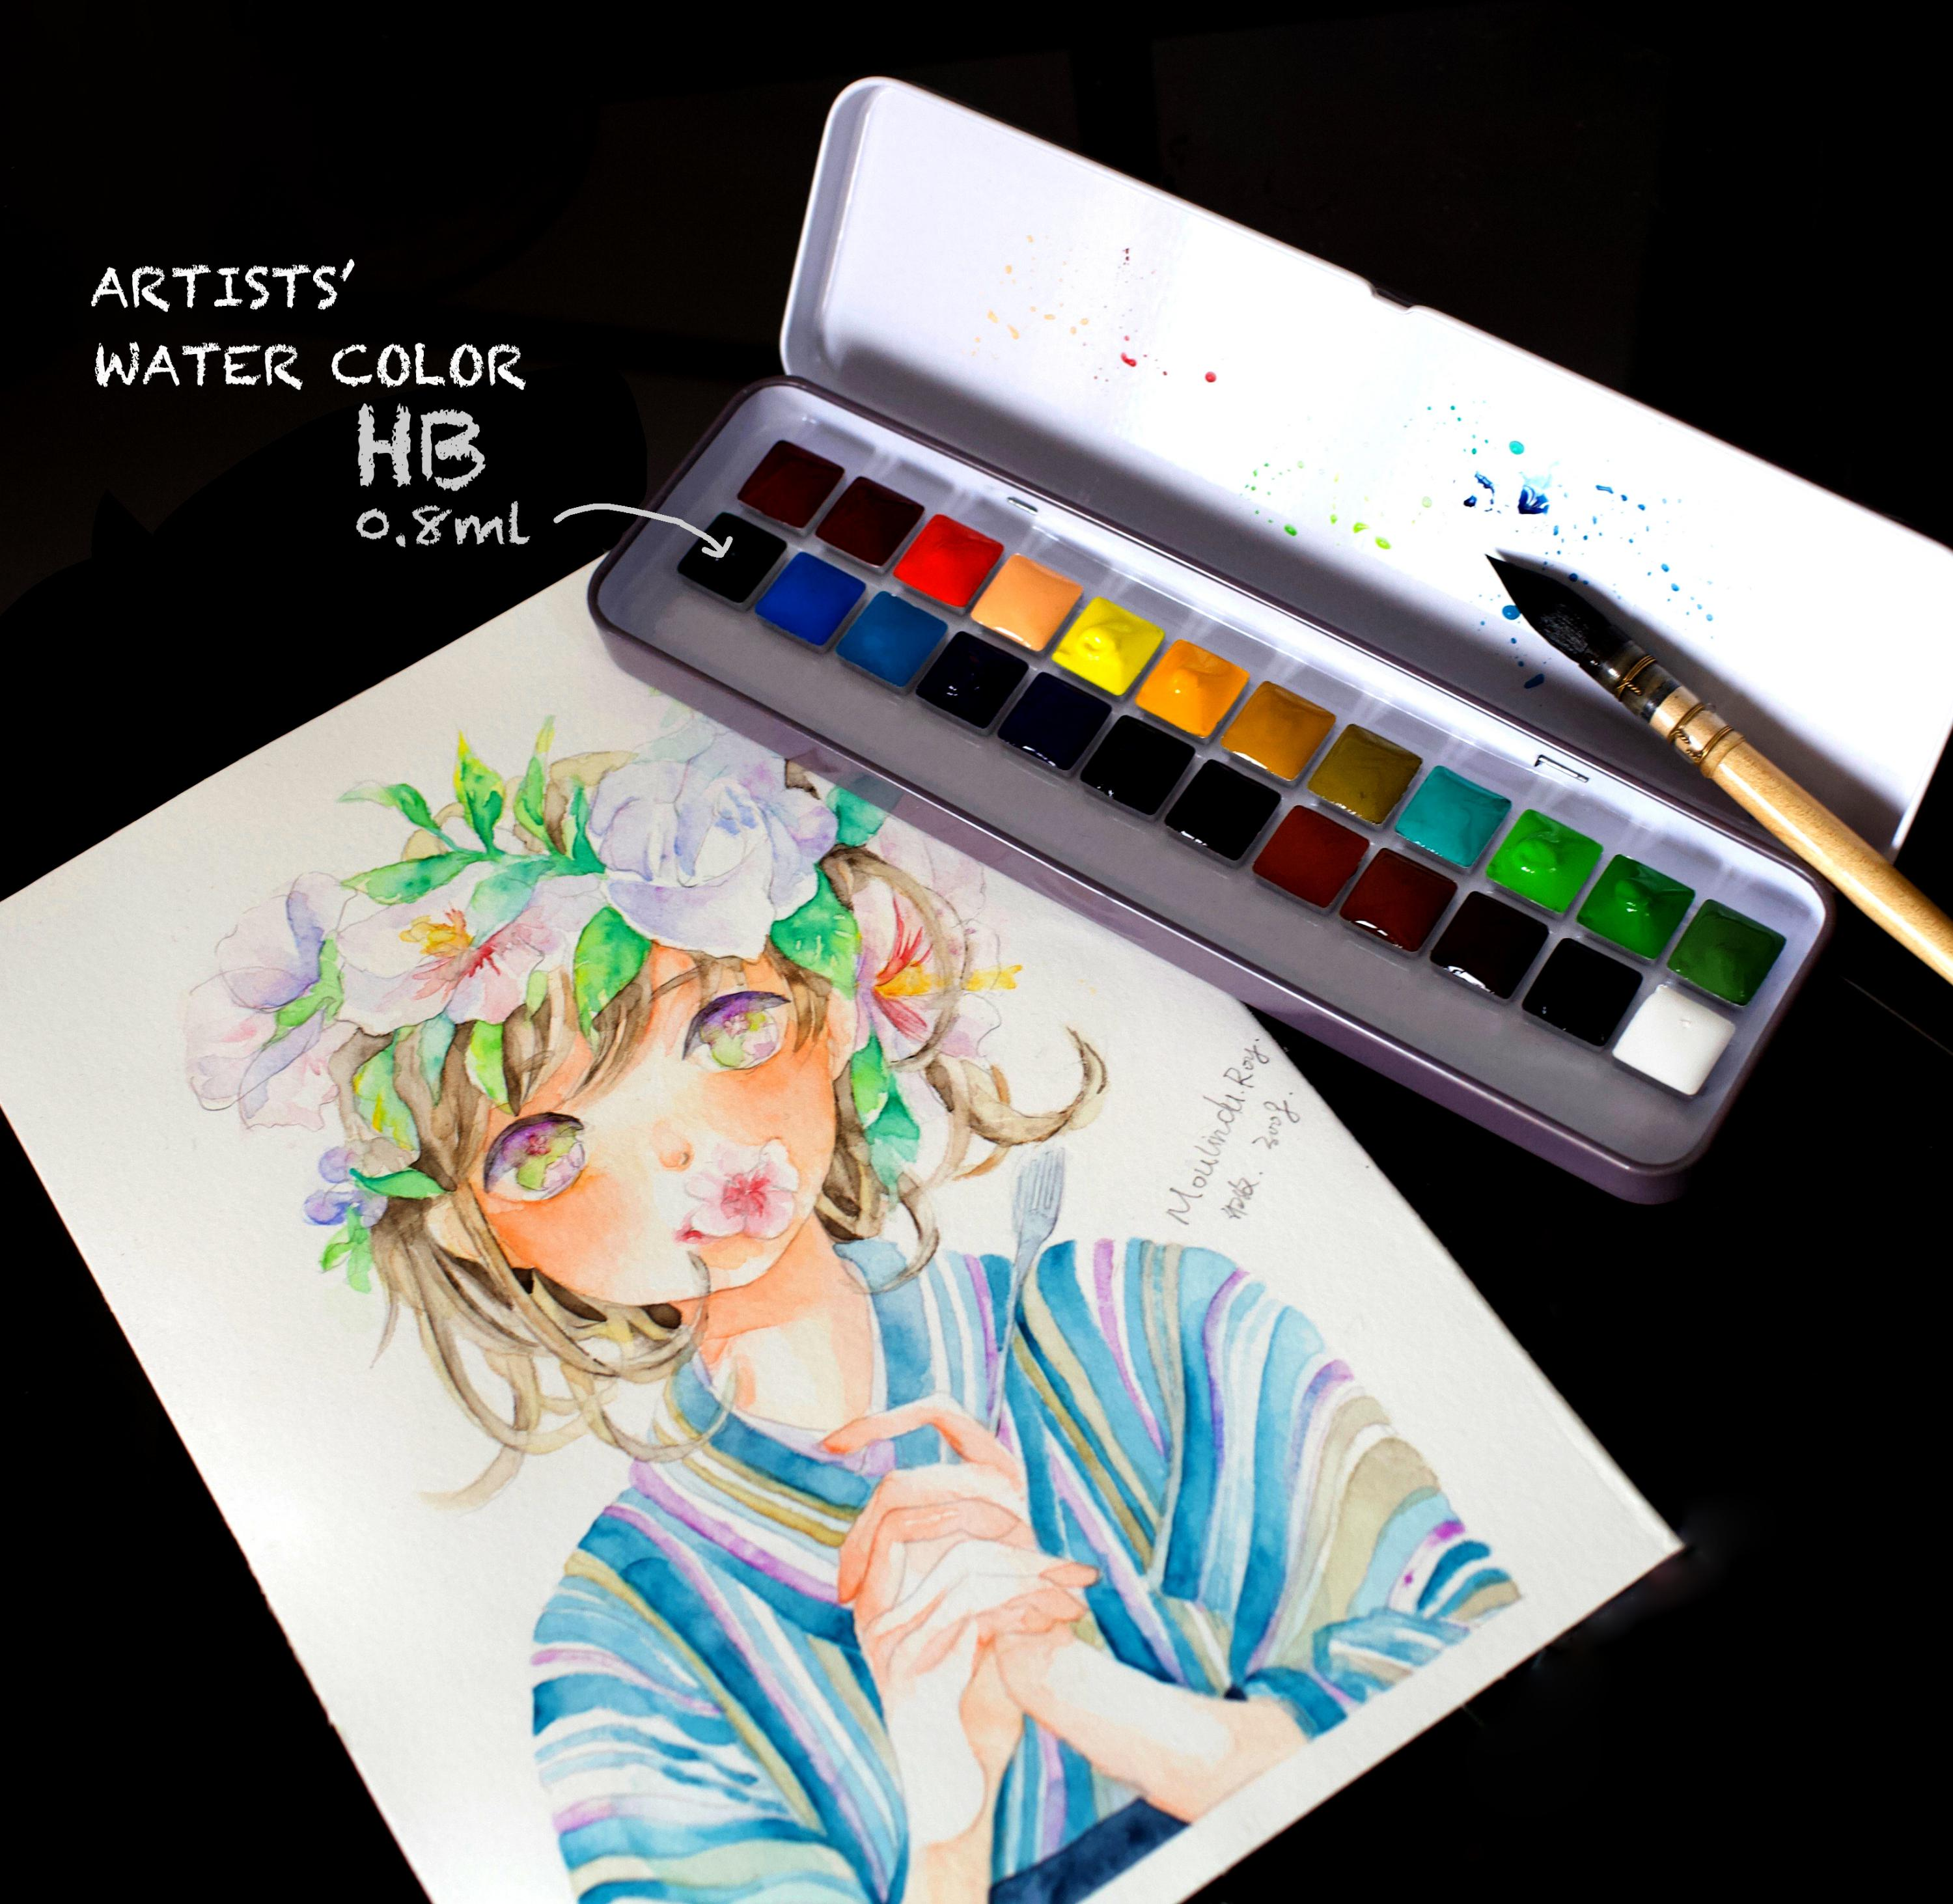 Japan Defeated Hb Holbein Artist Class Solid Watercolor Small Red Box 24 Colors Plant Color 24 Colors 0.8ml Package Mail japan holbein expert level transparent watercolor seven gods 12 colors 1 2ml solid watercolor trial tray dispensing plate